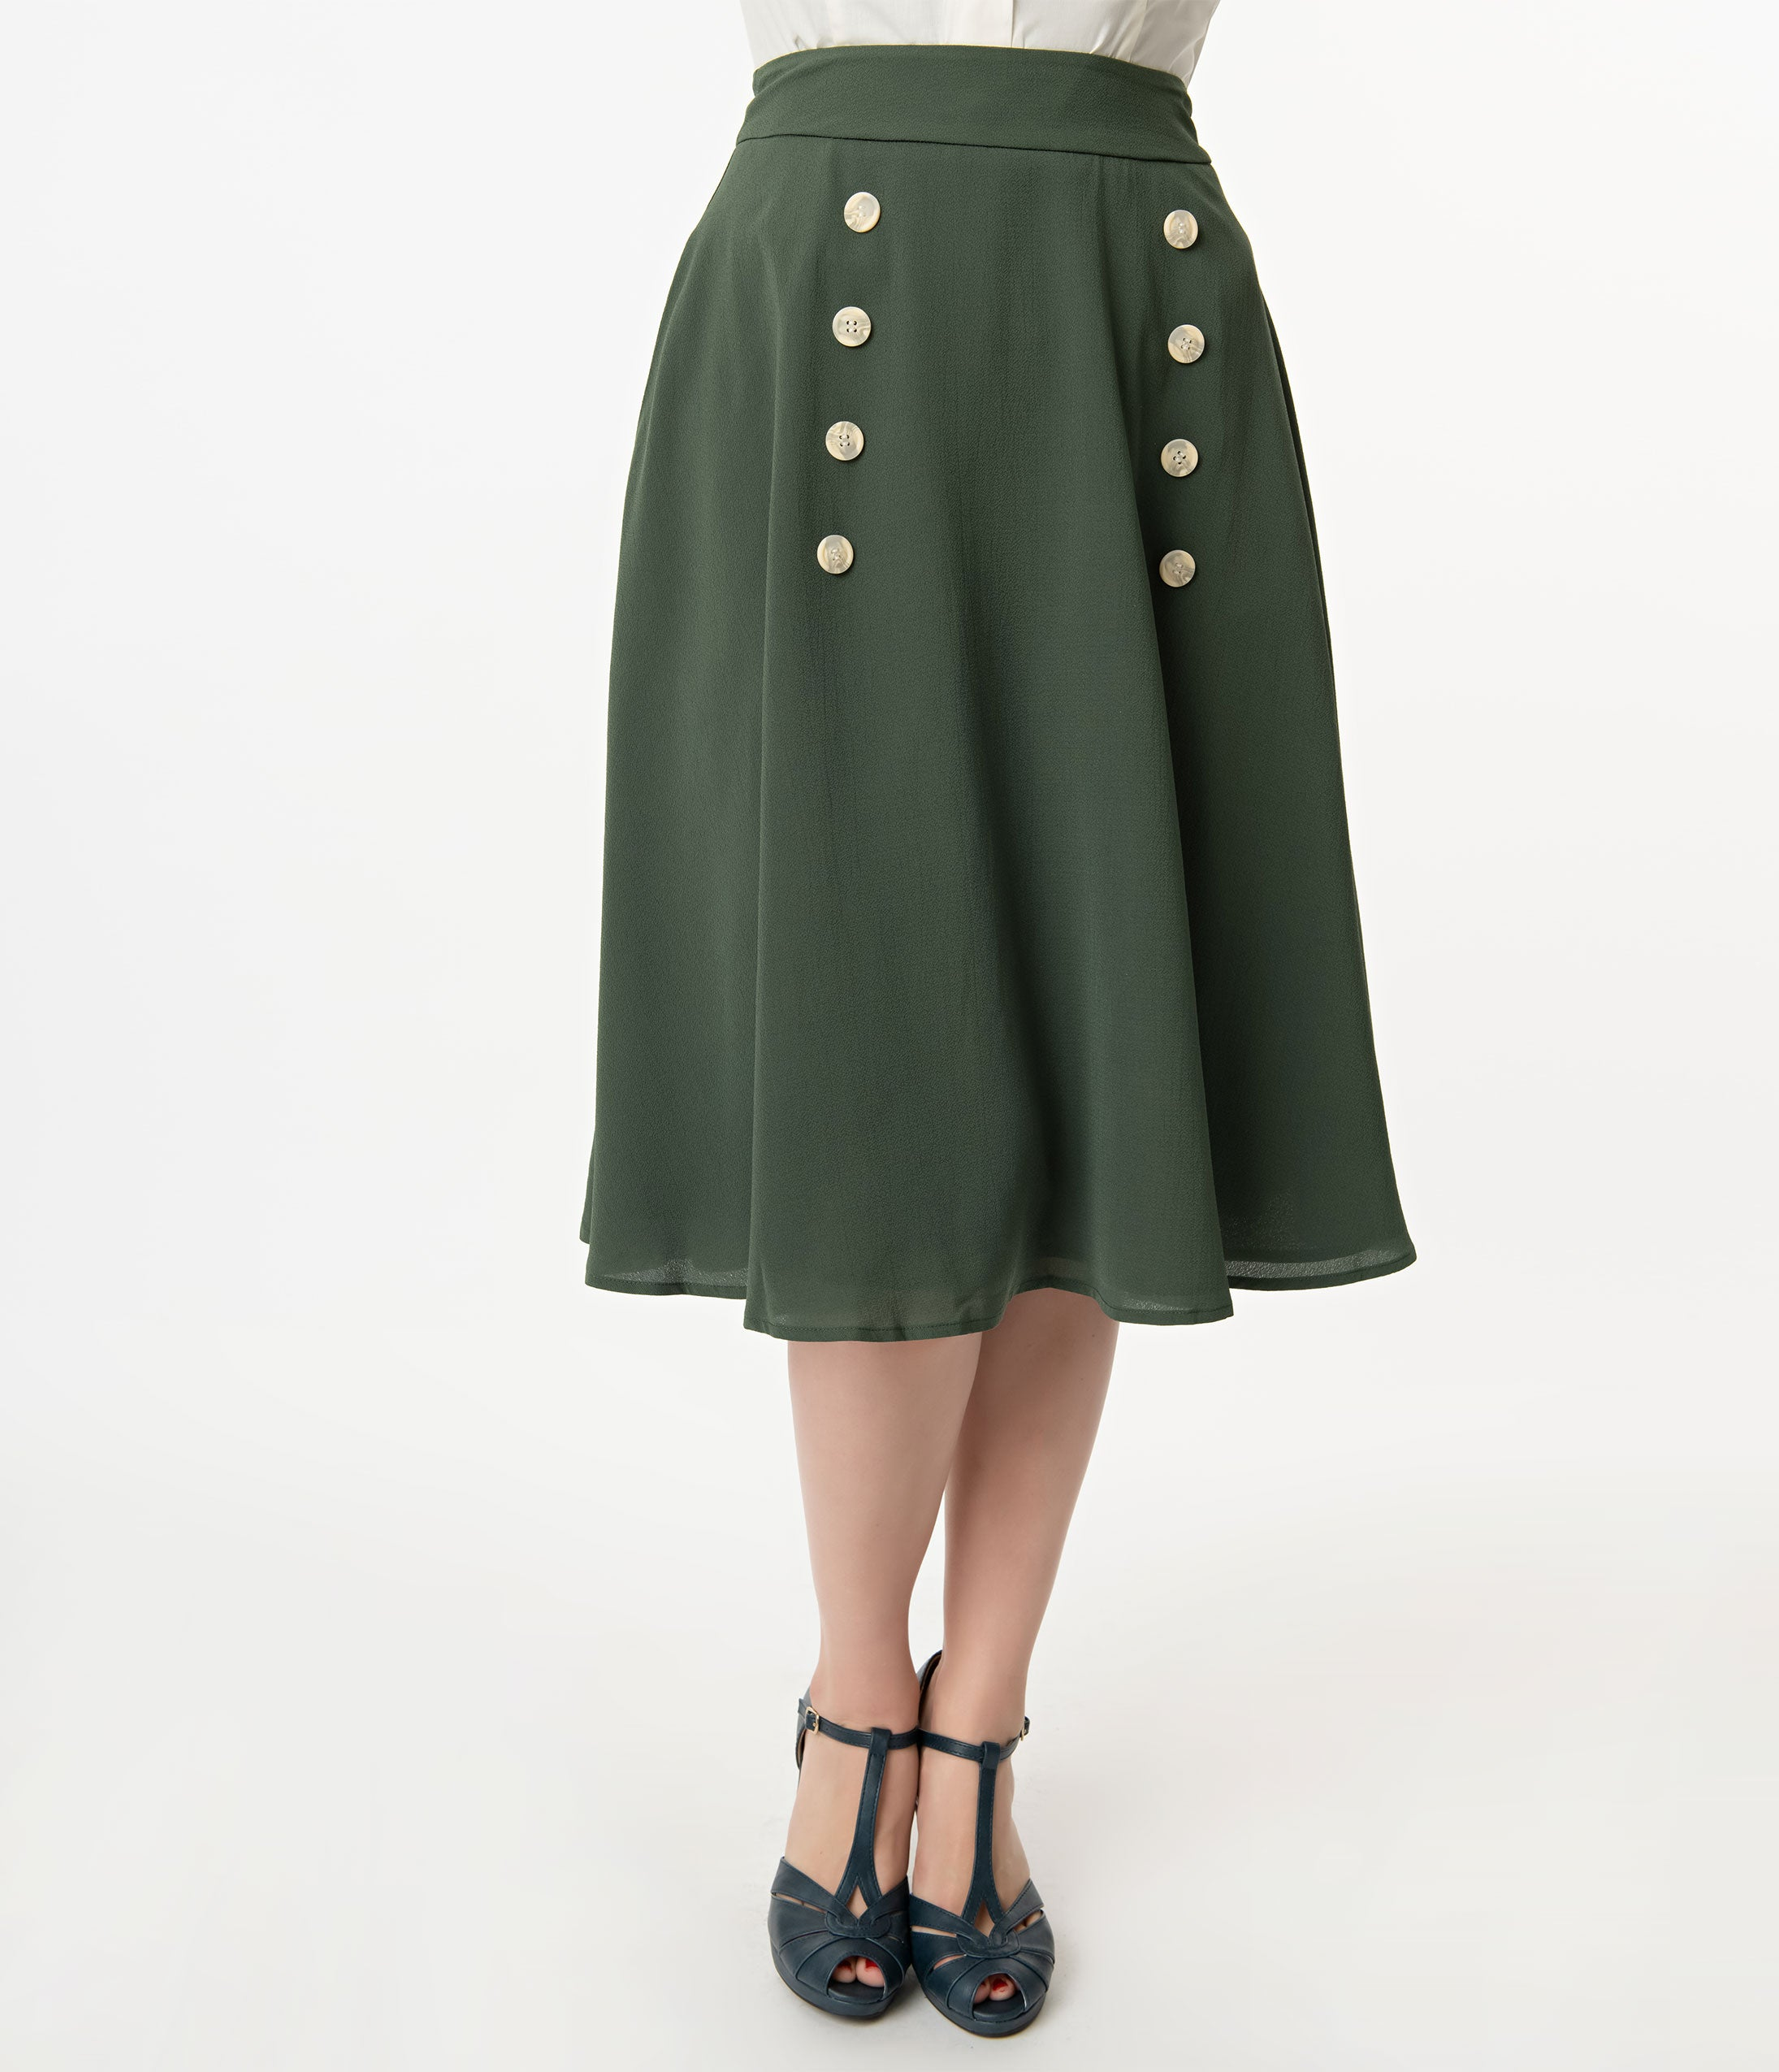 fe8540bcdad6ac 1950s Style Forest Green Crepe Cute As A Button High Waist Swing Skirt